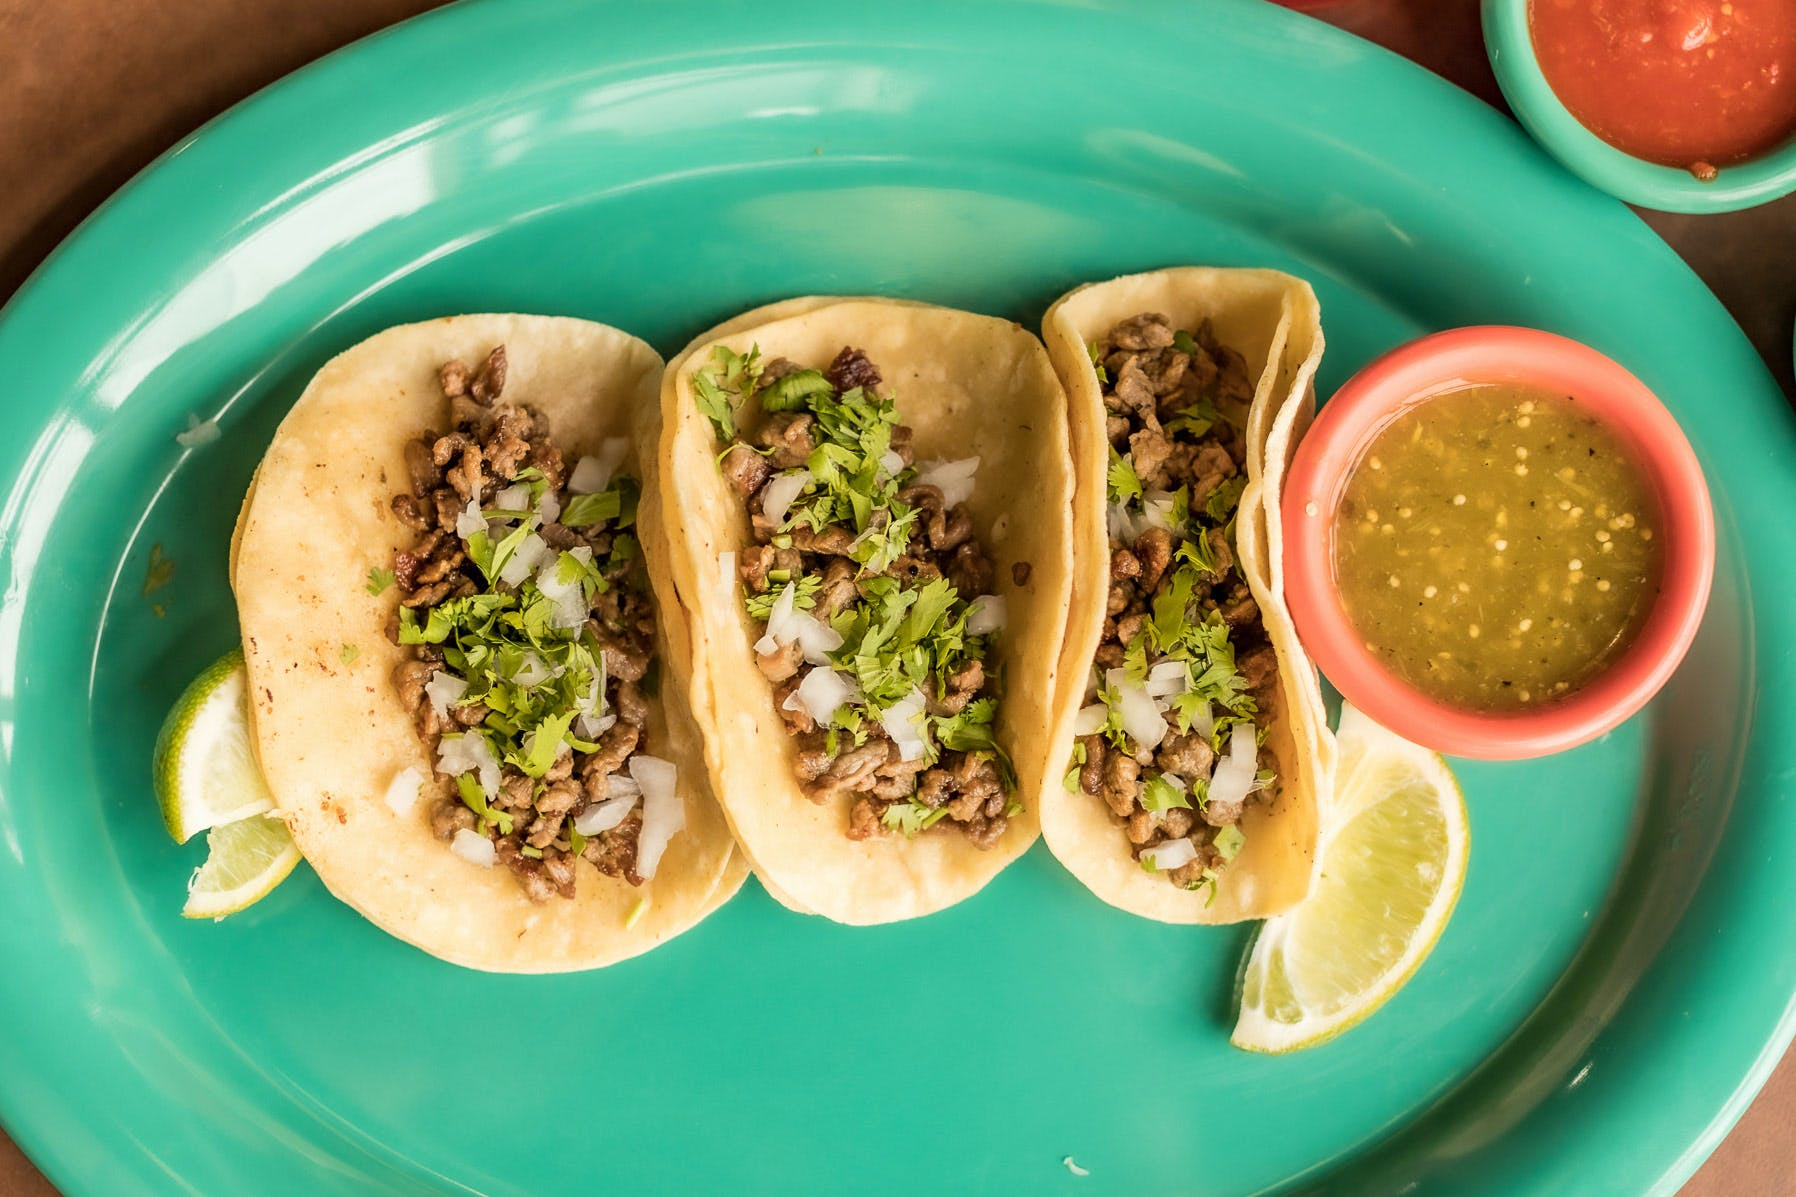 Silly Serrano Mexican Restaurant in Eau Claire - Highlight